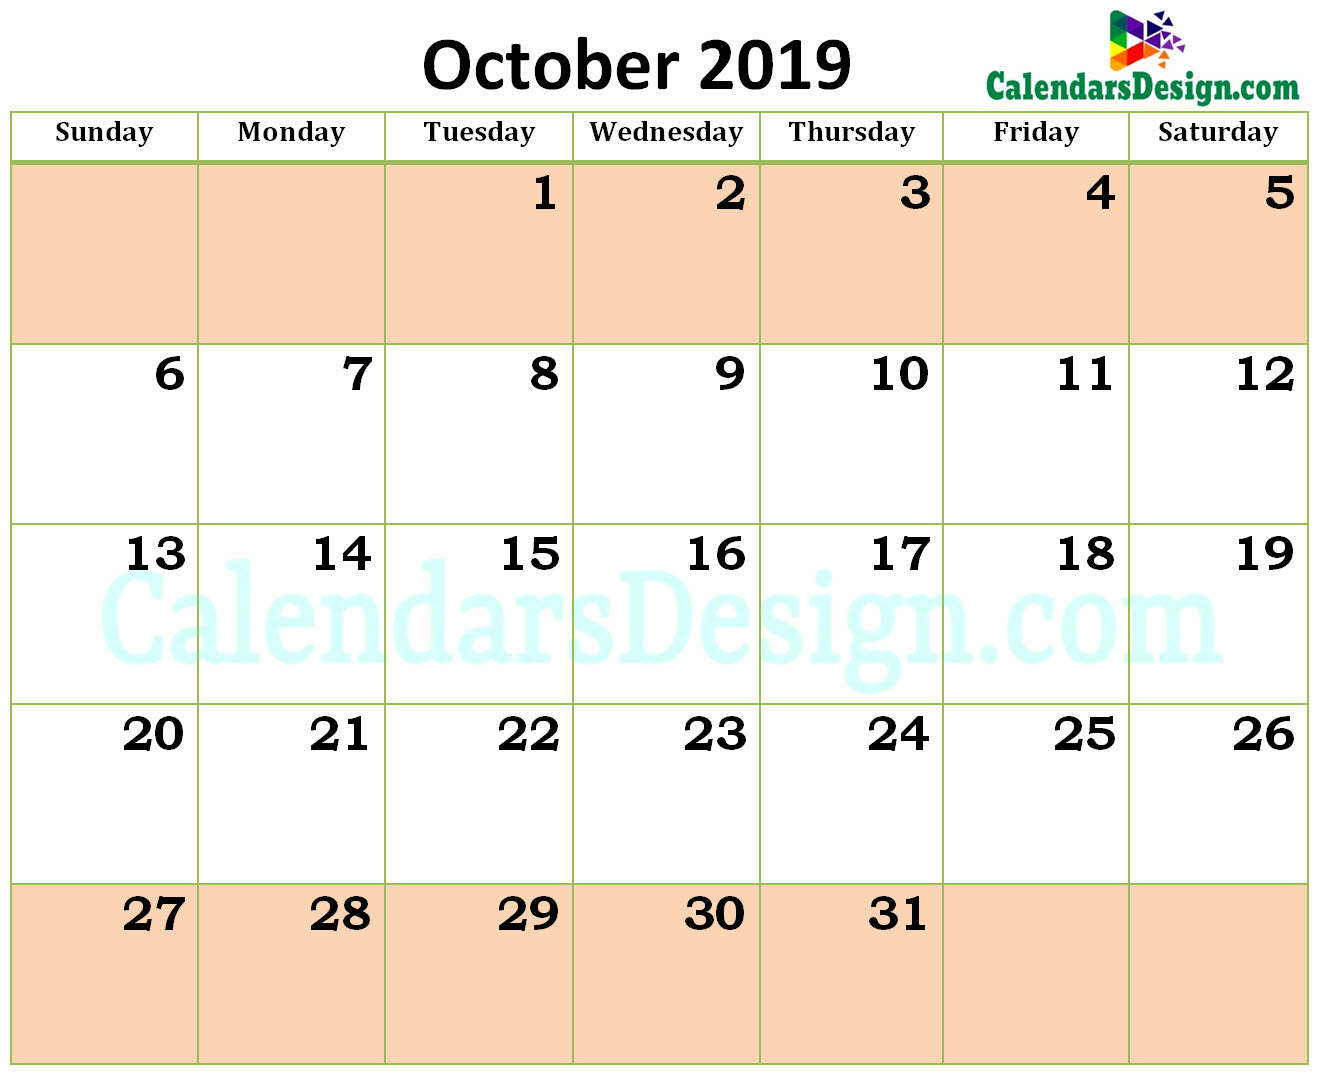 October Calendar 2019 in Excel Format